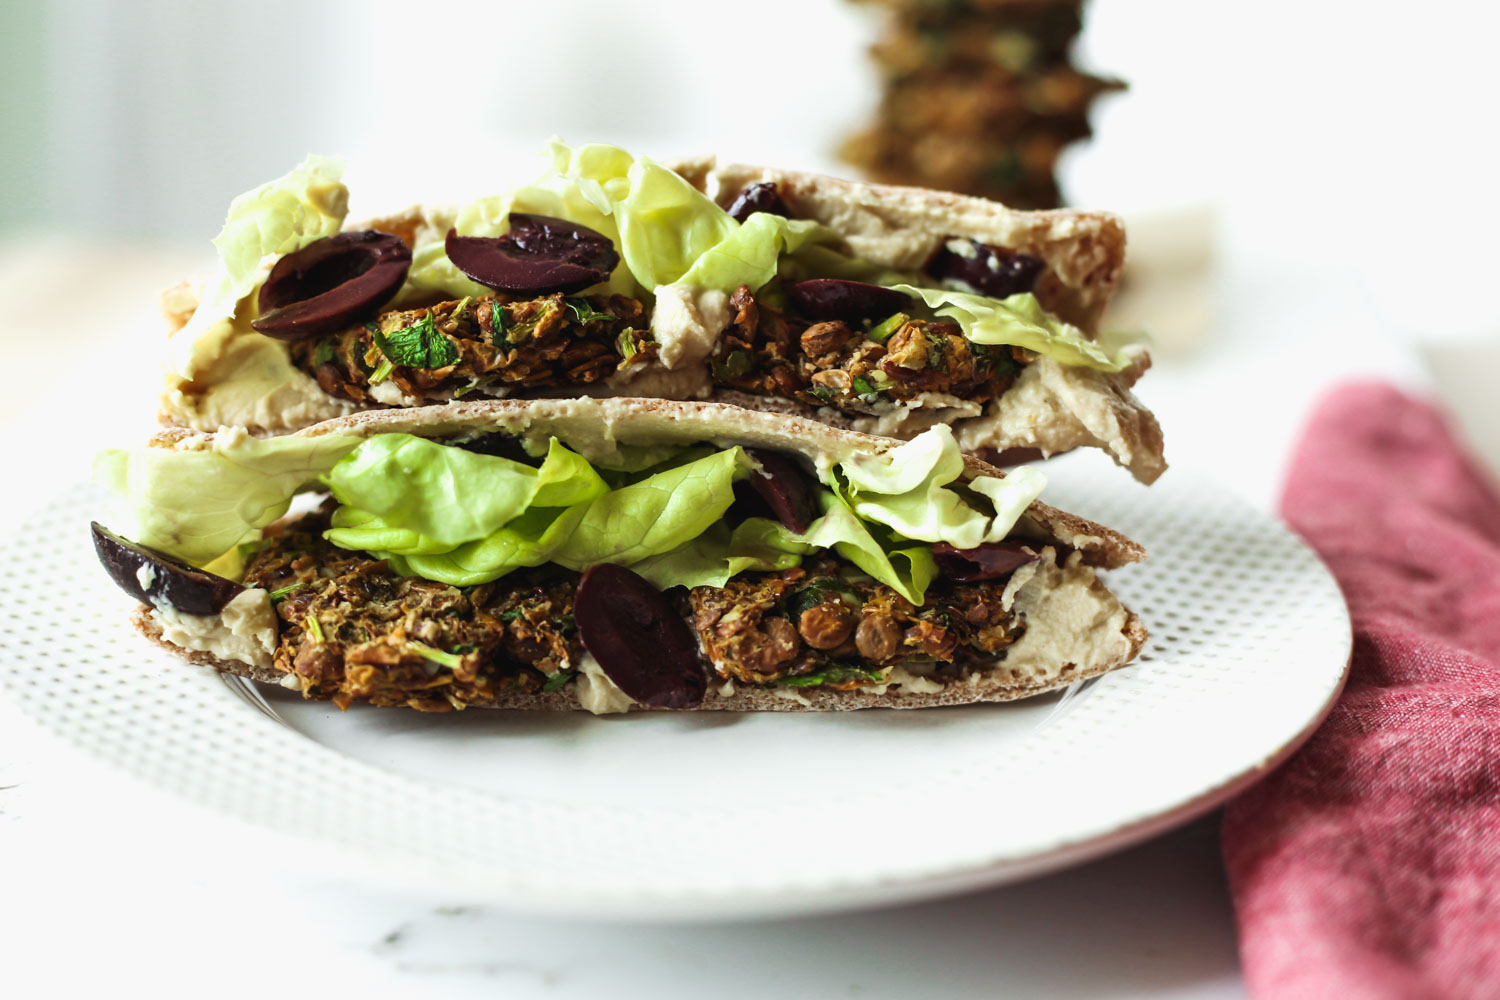 Baked Lentil Falafel Sandwich | Recipe from The Simply Vegan Cookbook by Dustin Harder